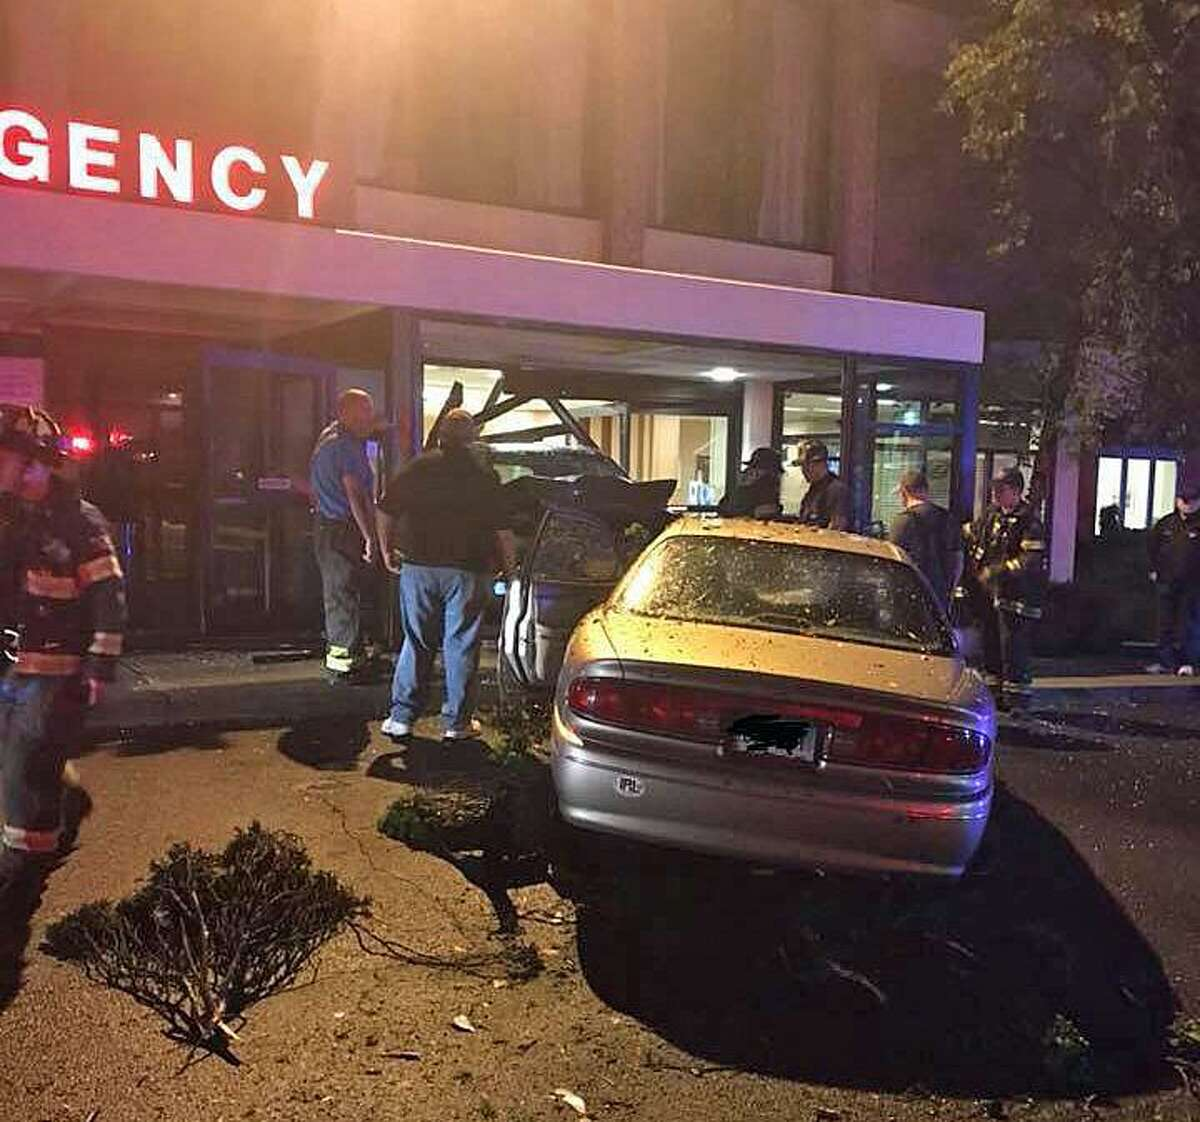 A car accident in a Griffin Hospital parking lot in Derby, Conn. damaged the Emergency Department entrance early Friday morning on June 1, 2018. No one was injured.